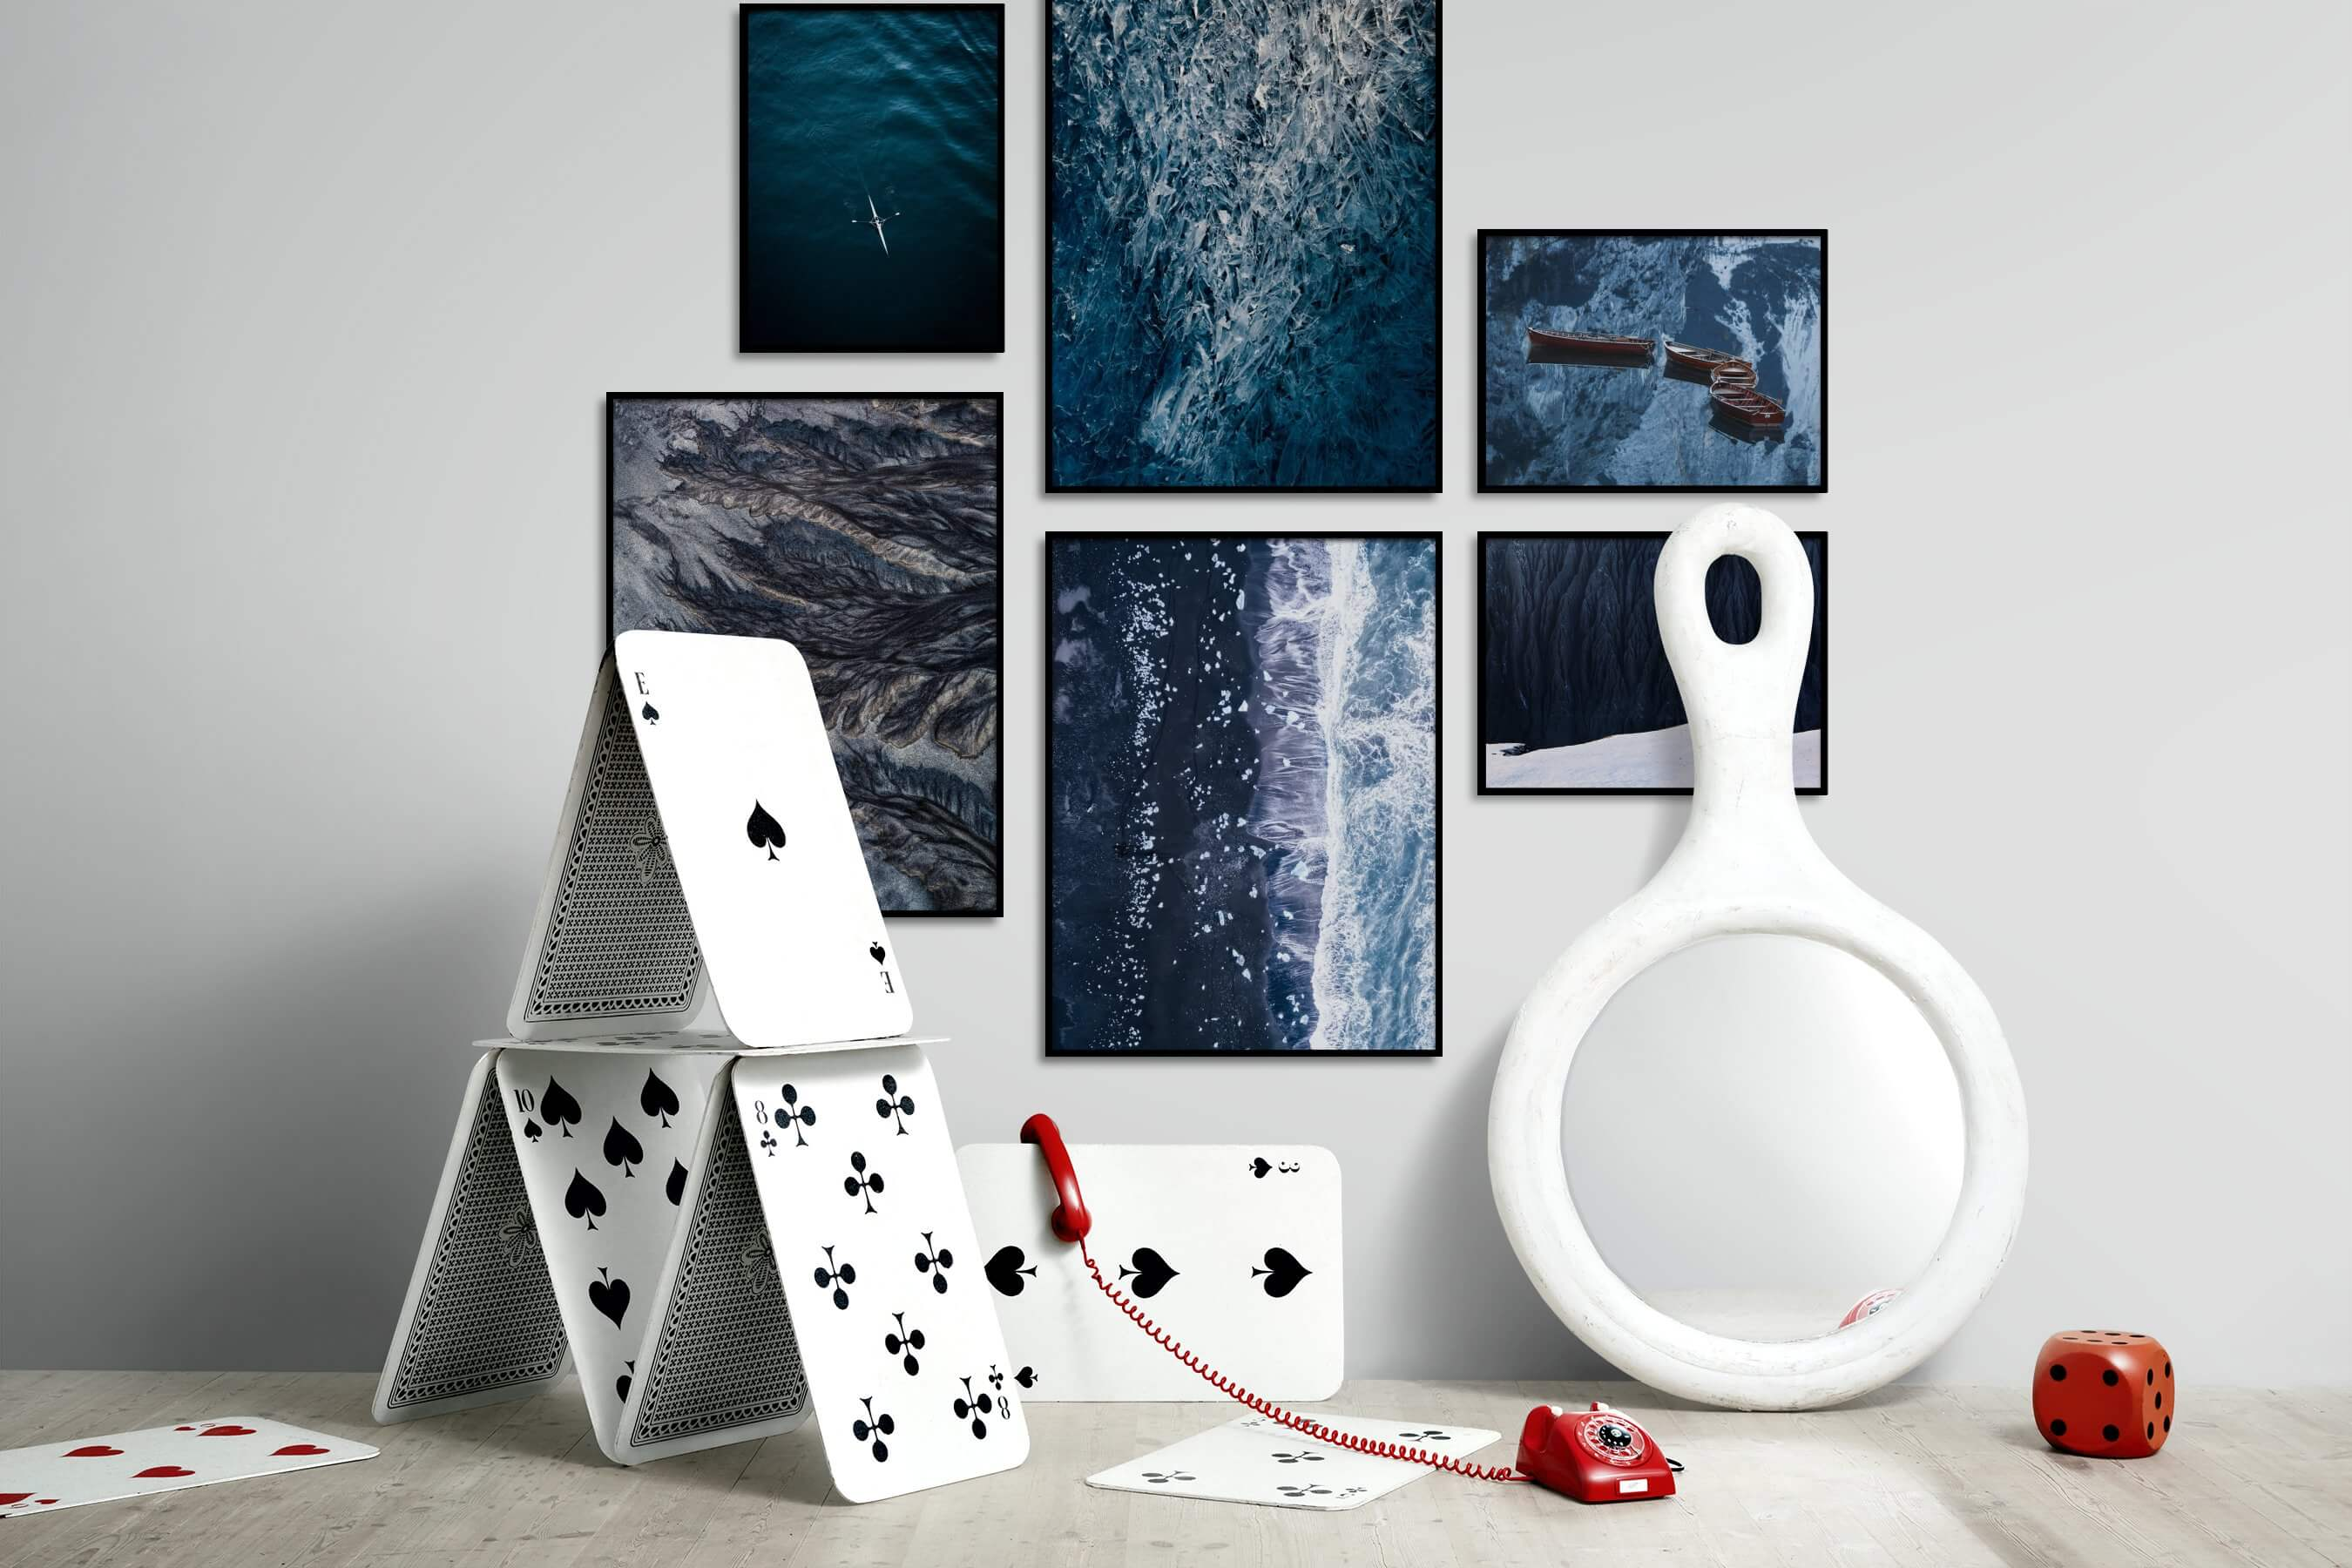 Gallery wall idea with six framed pictures arranged on a wall depicting For the Minimalist, Beach & Water, Mindfulness, For the Maximalist, Nature, For the Moderate, Dark Tones, and Country Life